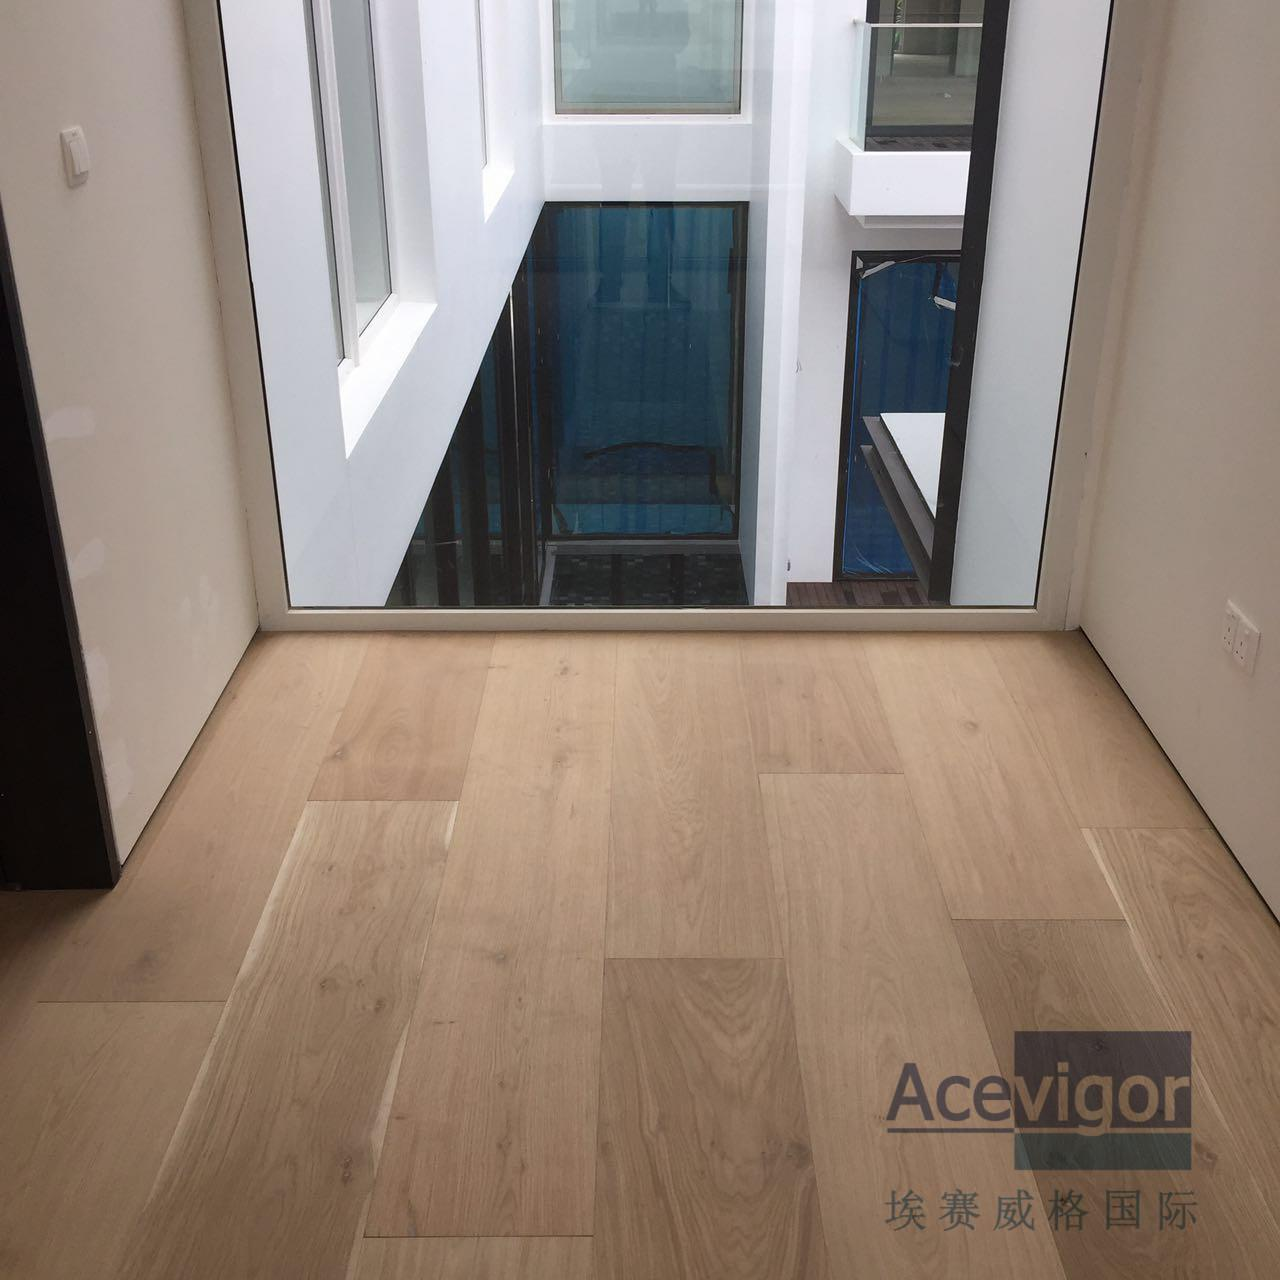 Quality Bespoke 20/6 x 300 x 2200mm AB grade wide White Oak Engineered Flooring for for sale